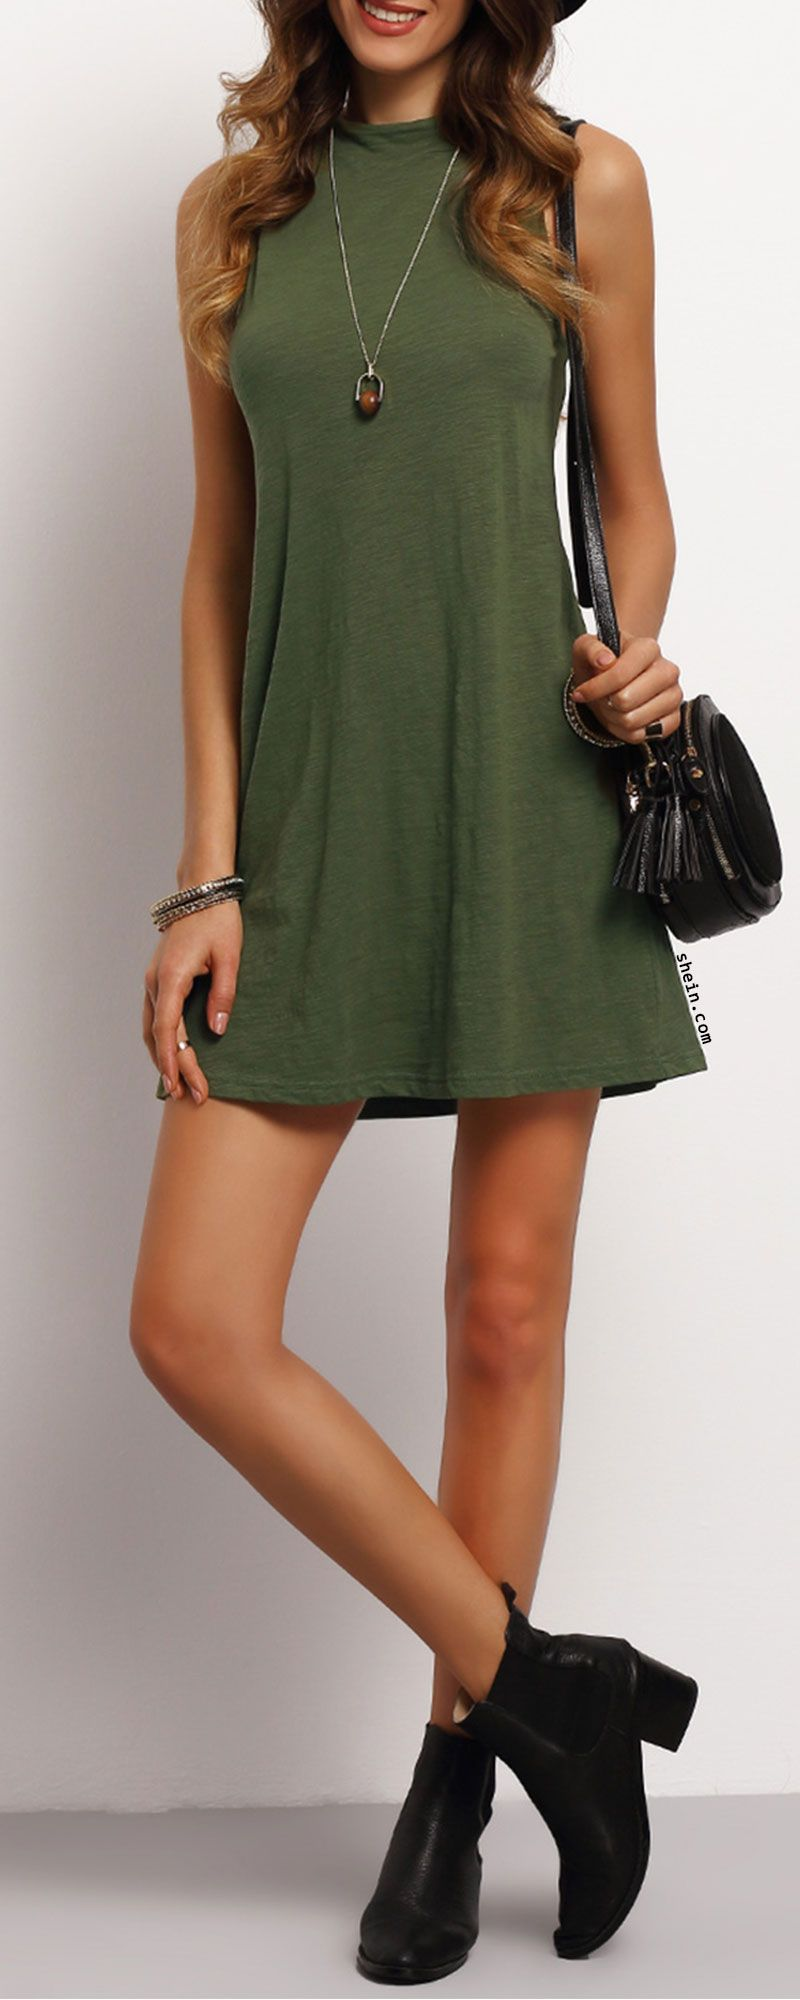 Green t shirt dress outfit  Blackish Green Mock Neck Sleeveless Tshirt Dress  Fashion